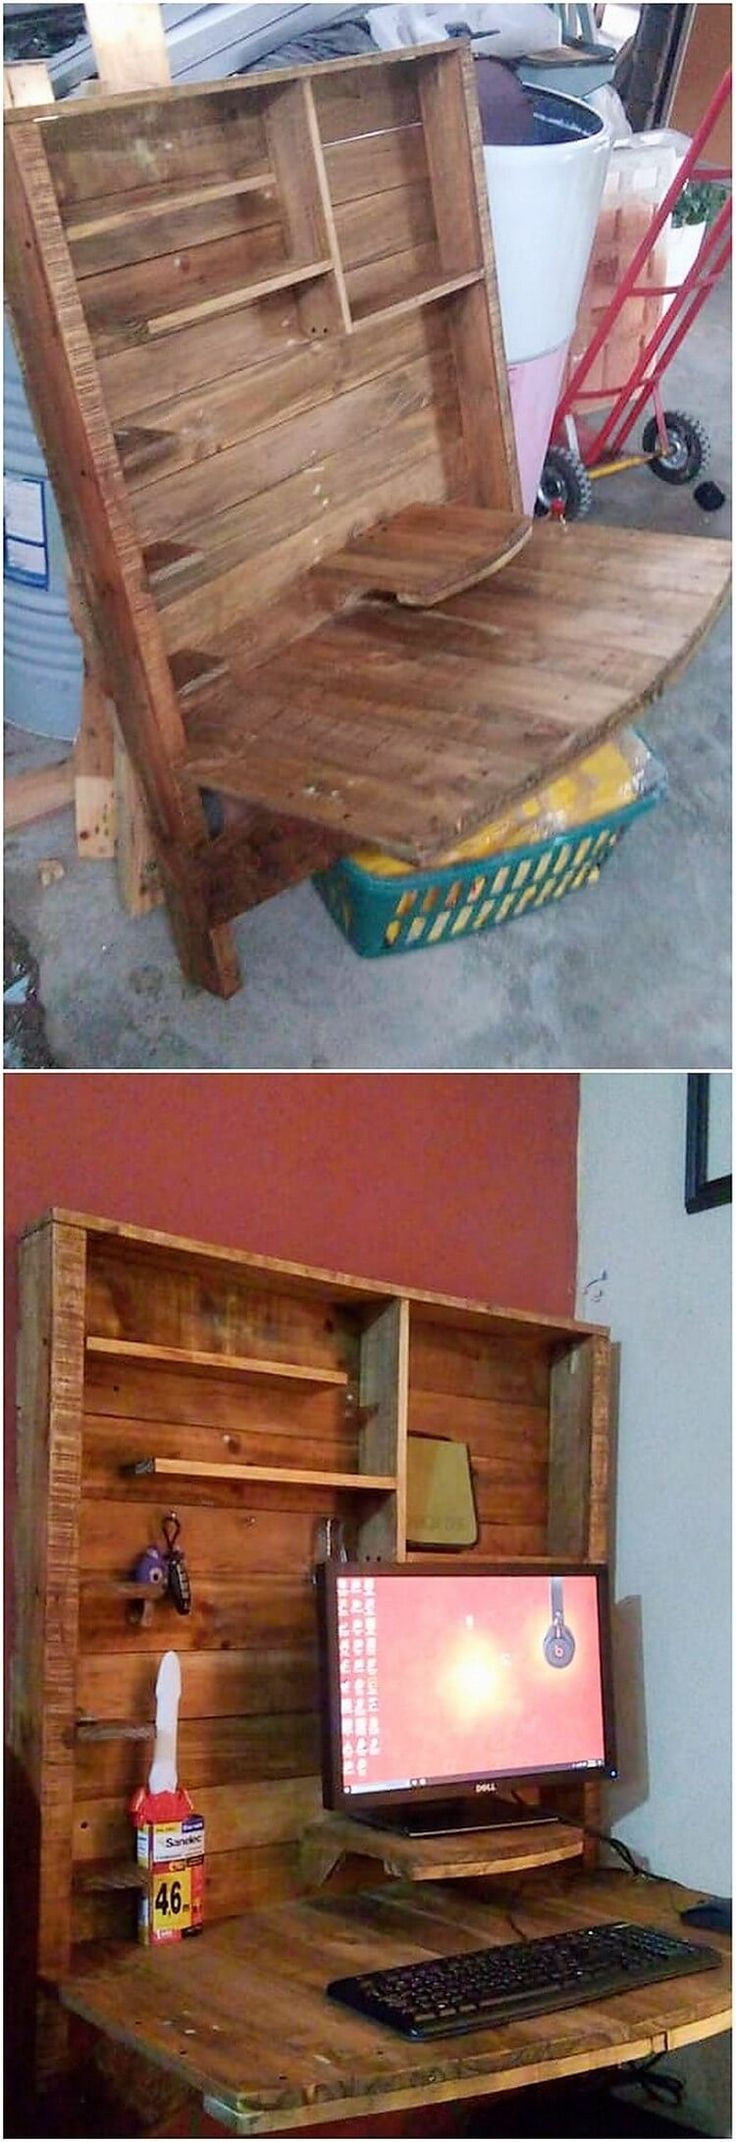 This is one of the amazing creation of wood pallet folding desk use in it will eventually give a nice impression to your house. This wood pallet creative folding desk do offer with the unique giant structural designing framework of table effect creation. You can make avail as the laptop or computer table stand too.